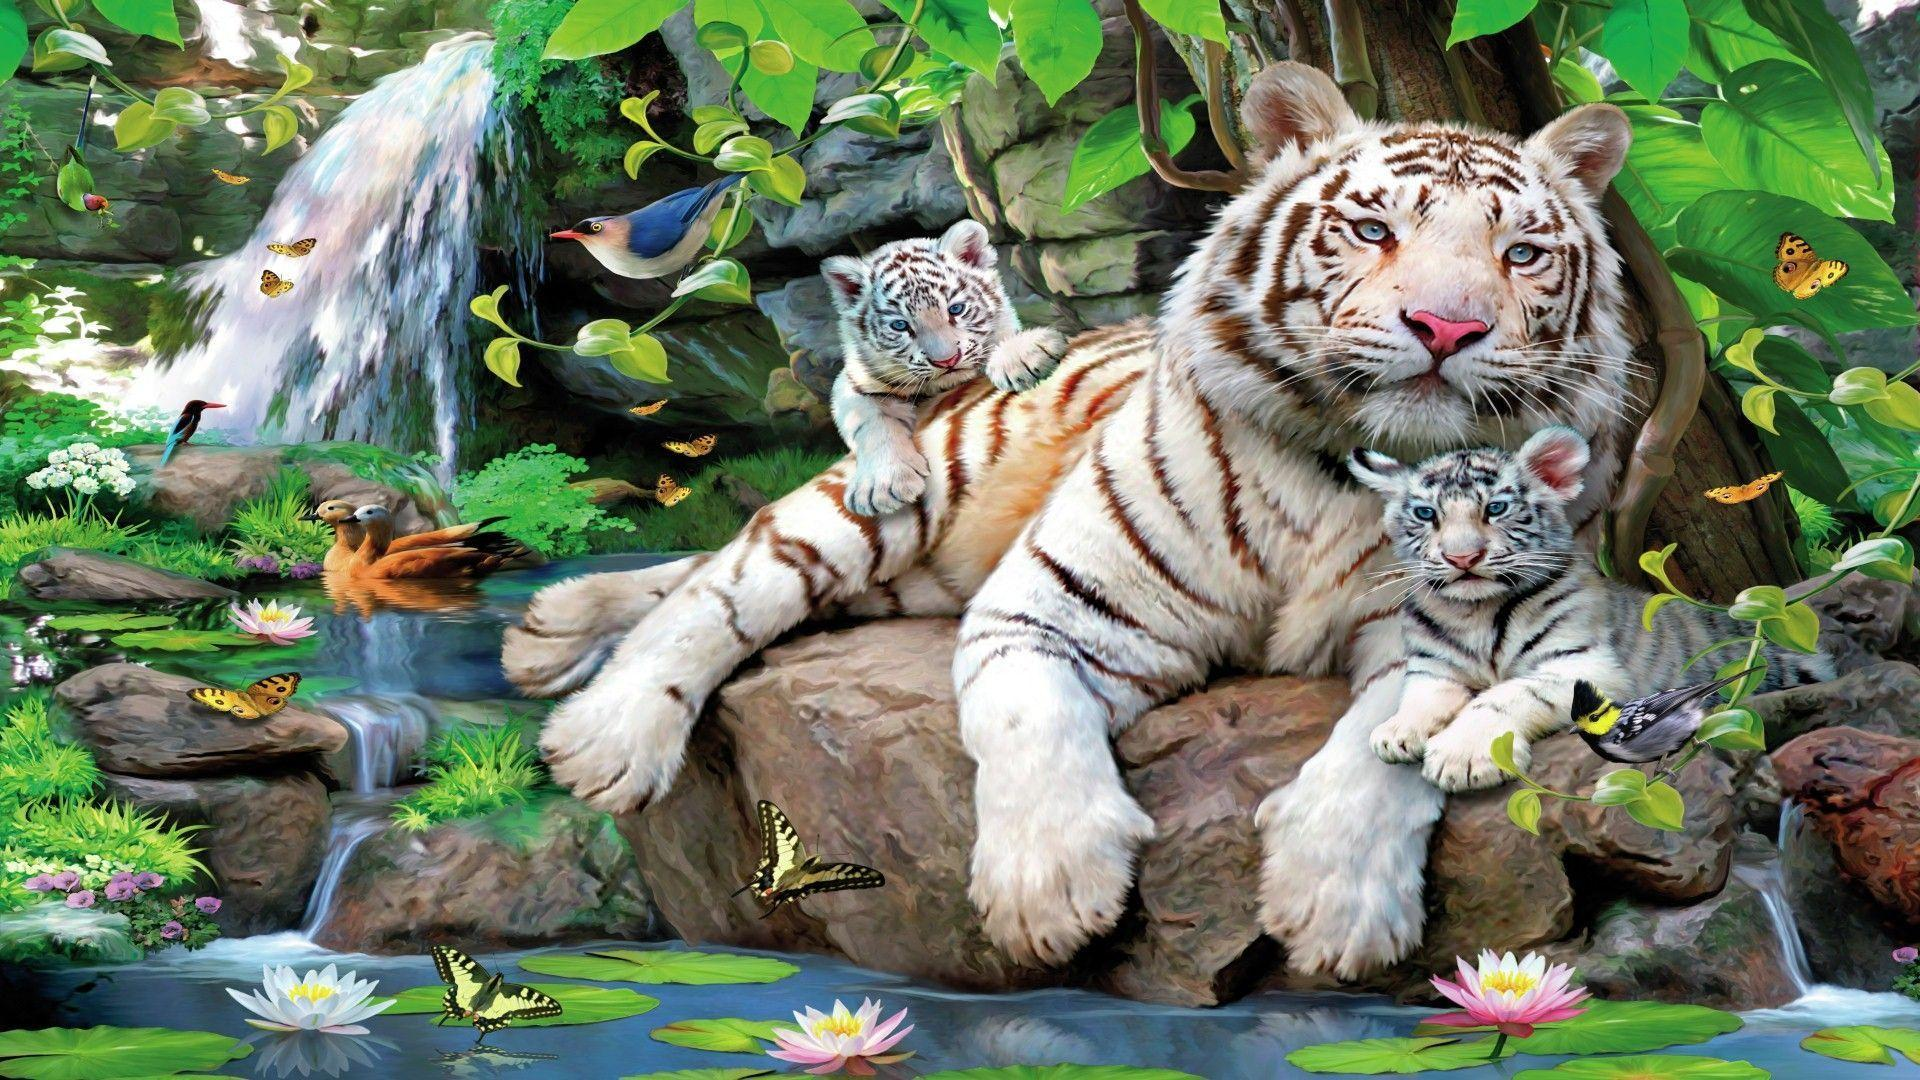 White tiger cubs wallpapers wallpaper cave - Tiger hd wallpaper for pc ...